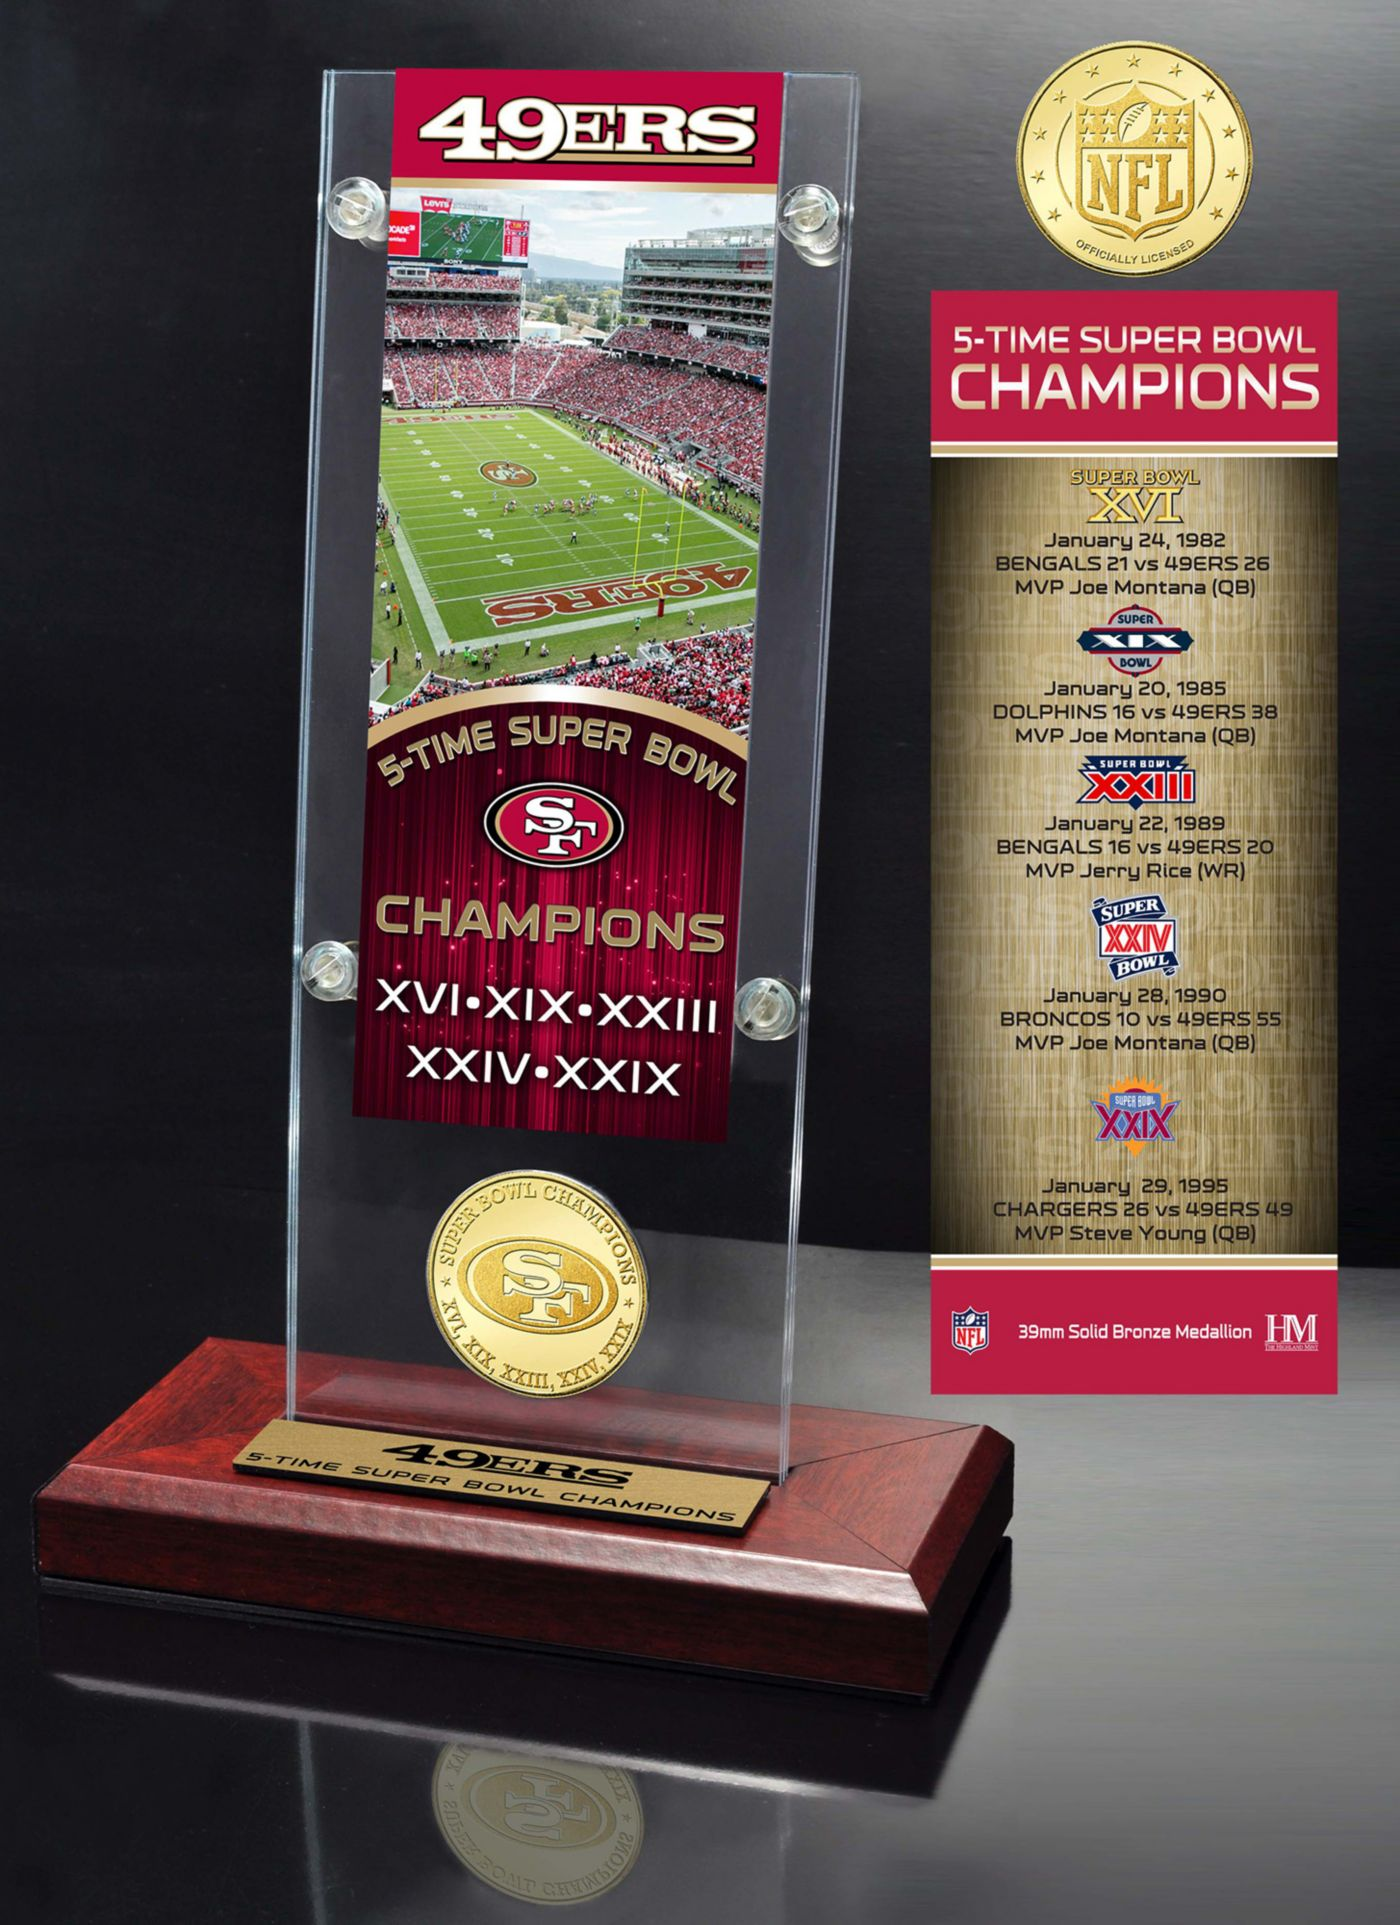 Highland Mint San Francisco 49ers Super Bowl Champions Ticket & Minted Coin Acrylic Desktop Display